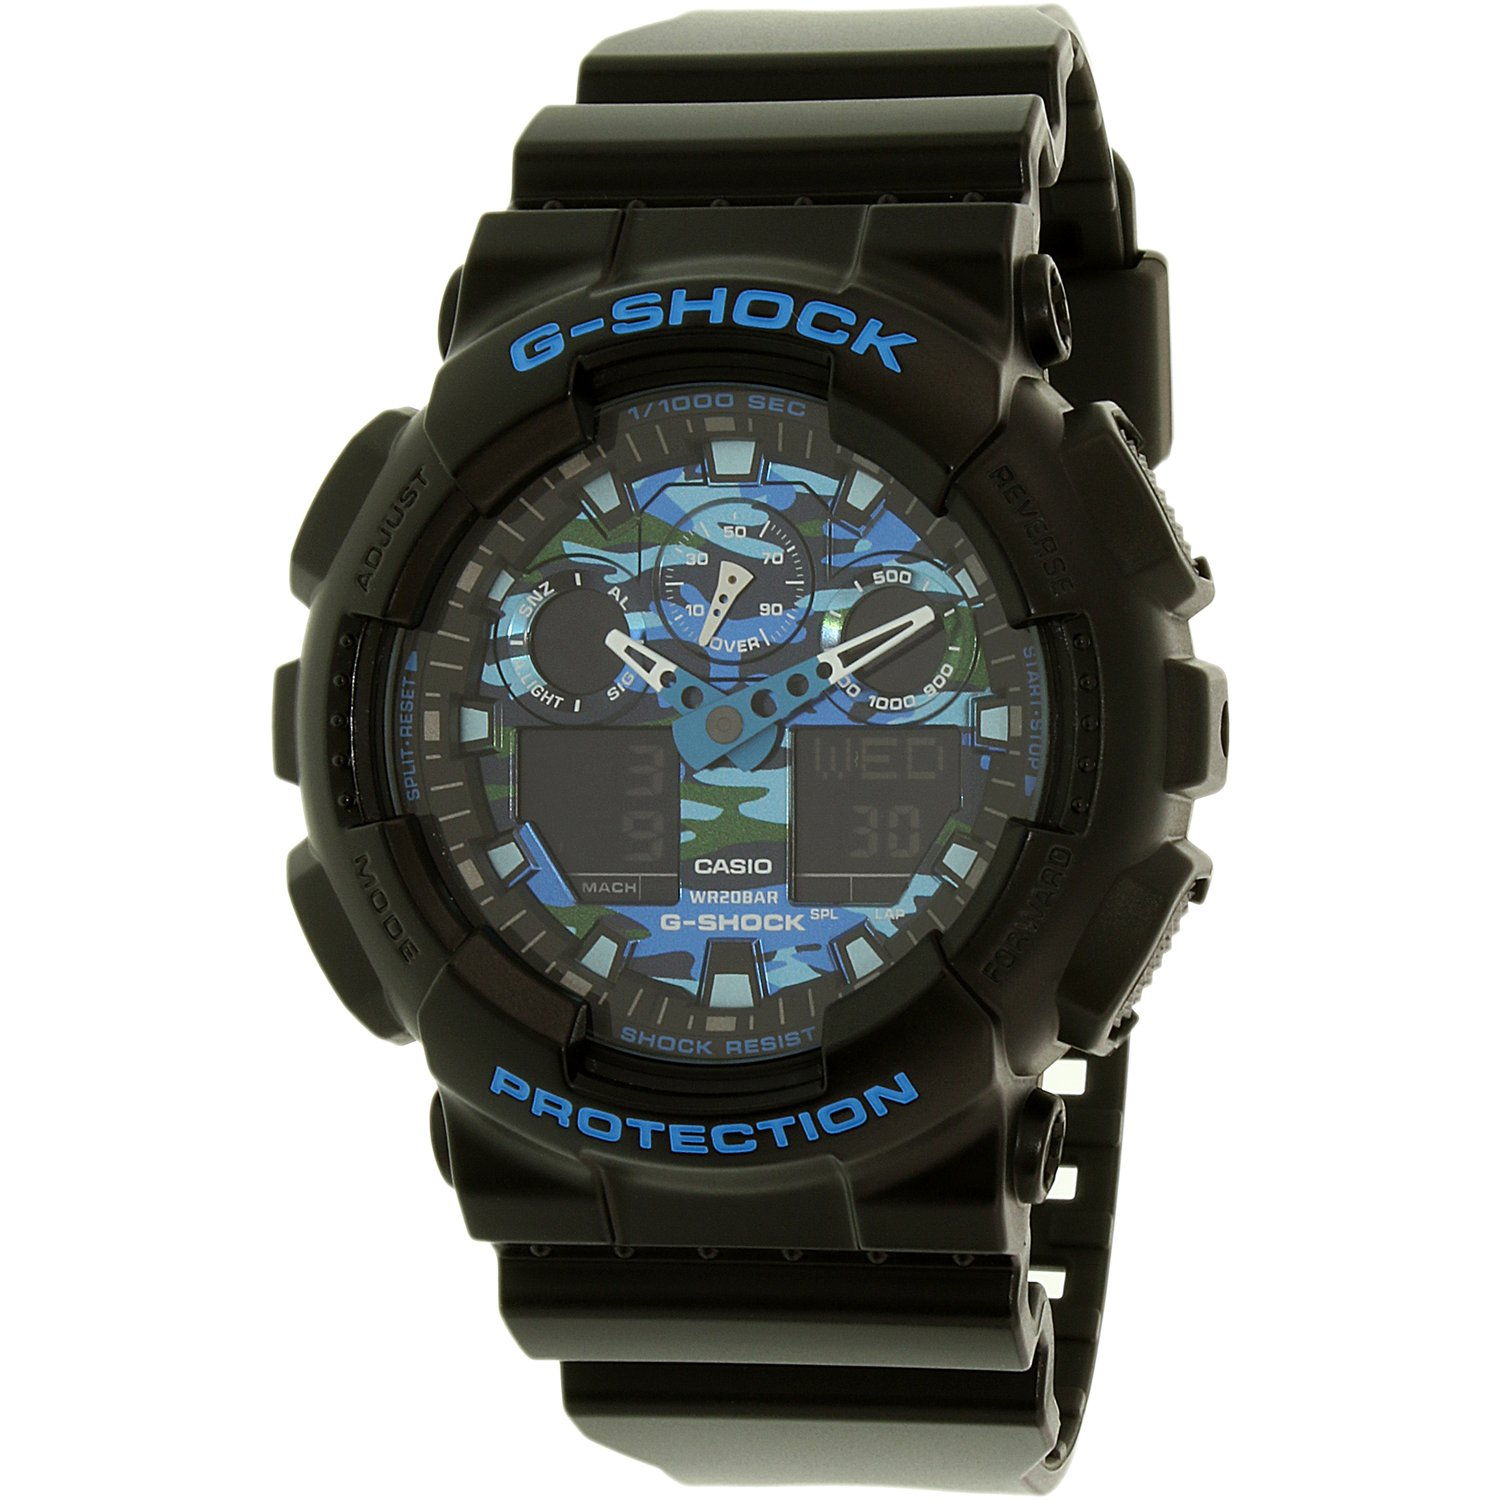 Casio Men's G-Shock GA100CB-1A Black Resin Japanese Quartz Sport Watch